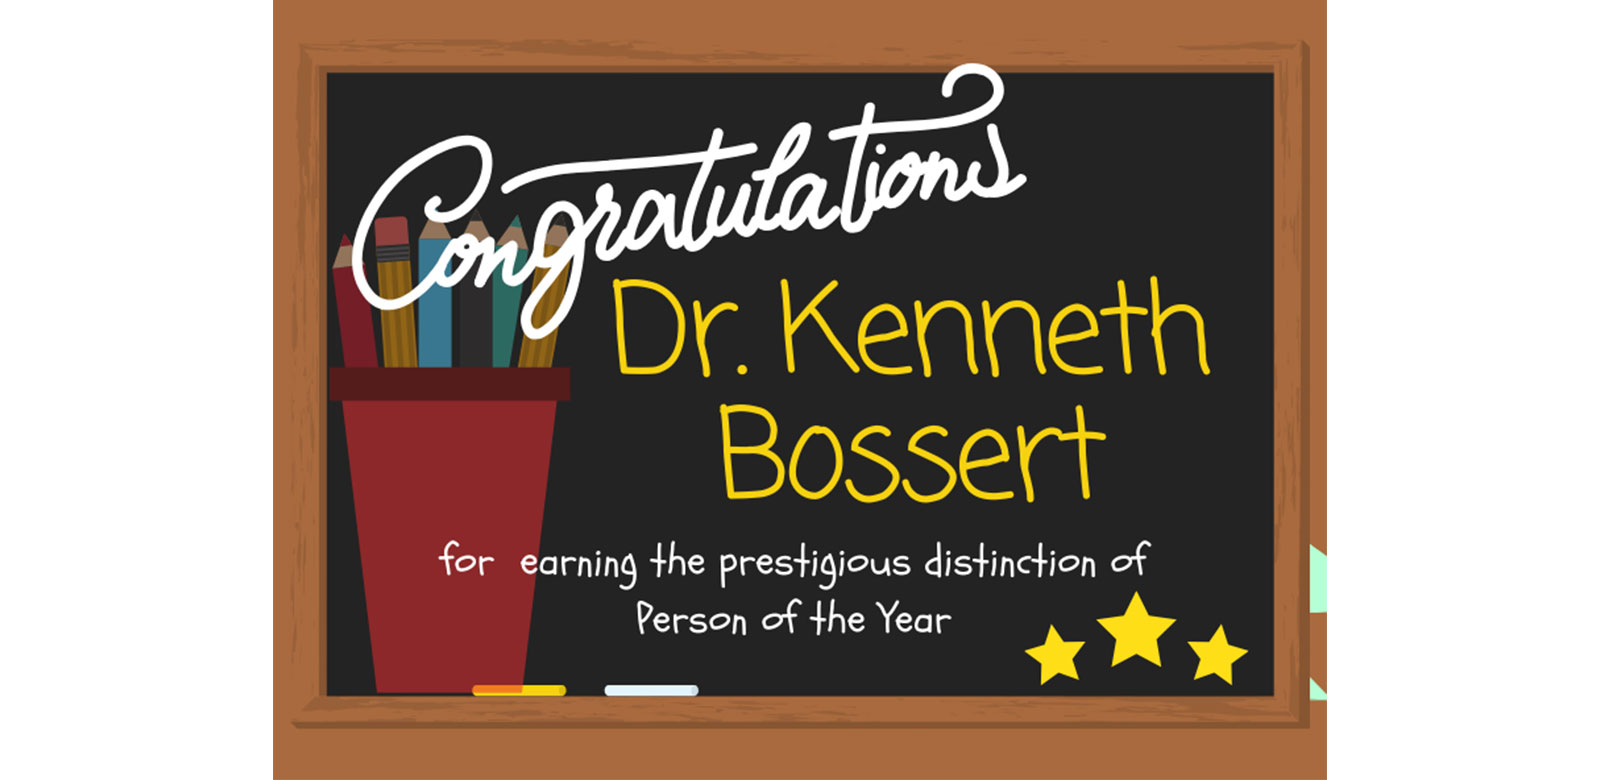 Dr. Kenneth Bossert Selected as a Person of the Year